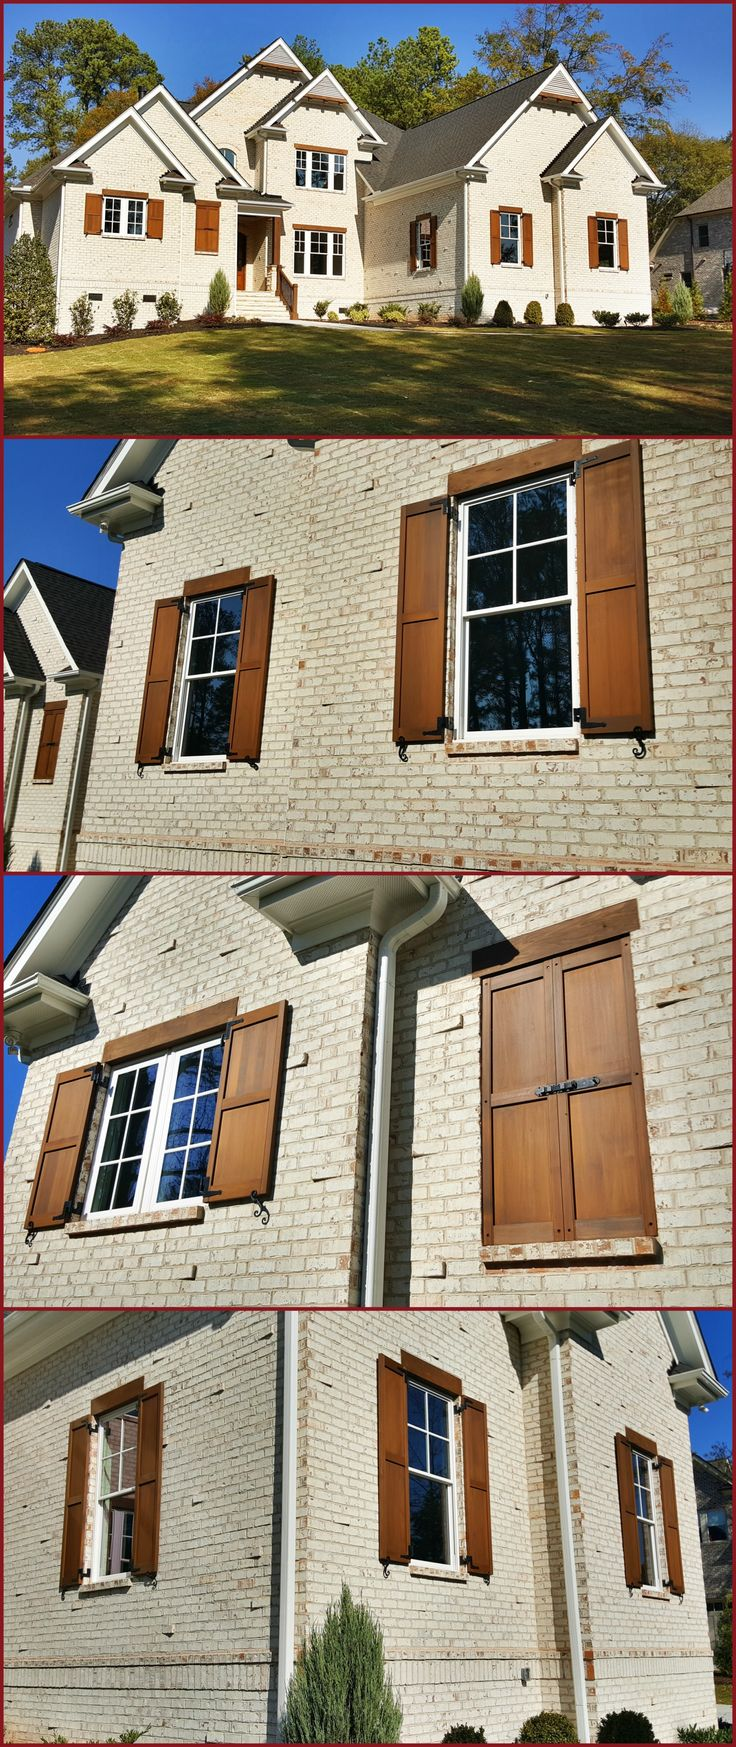 Custom built and stained exterior cedar shutters on white brick house |  Outdoor | Pinterest | White brick houses, Cedar shutters and Bricks